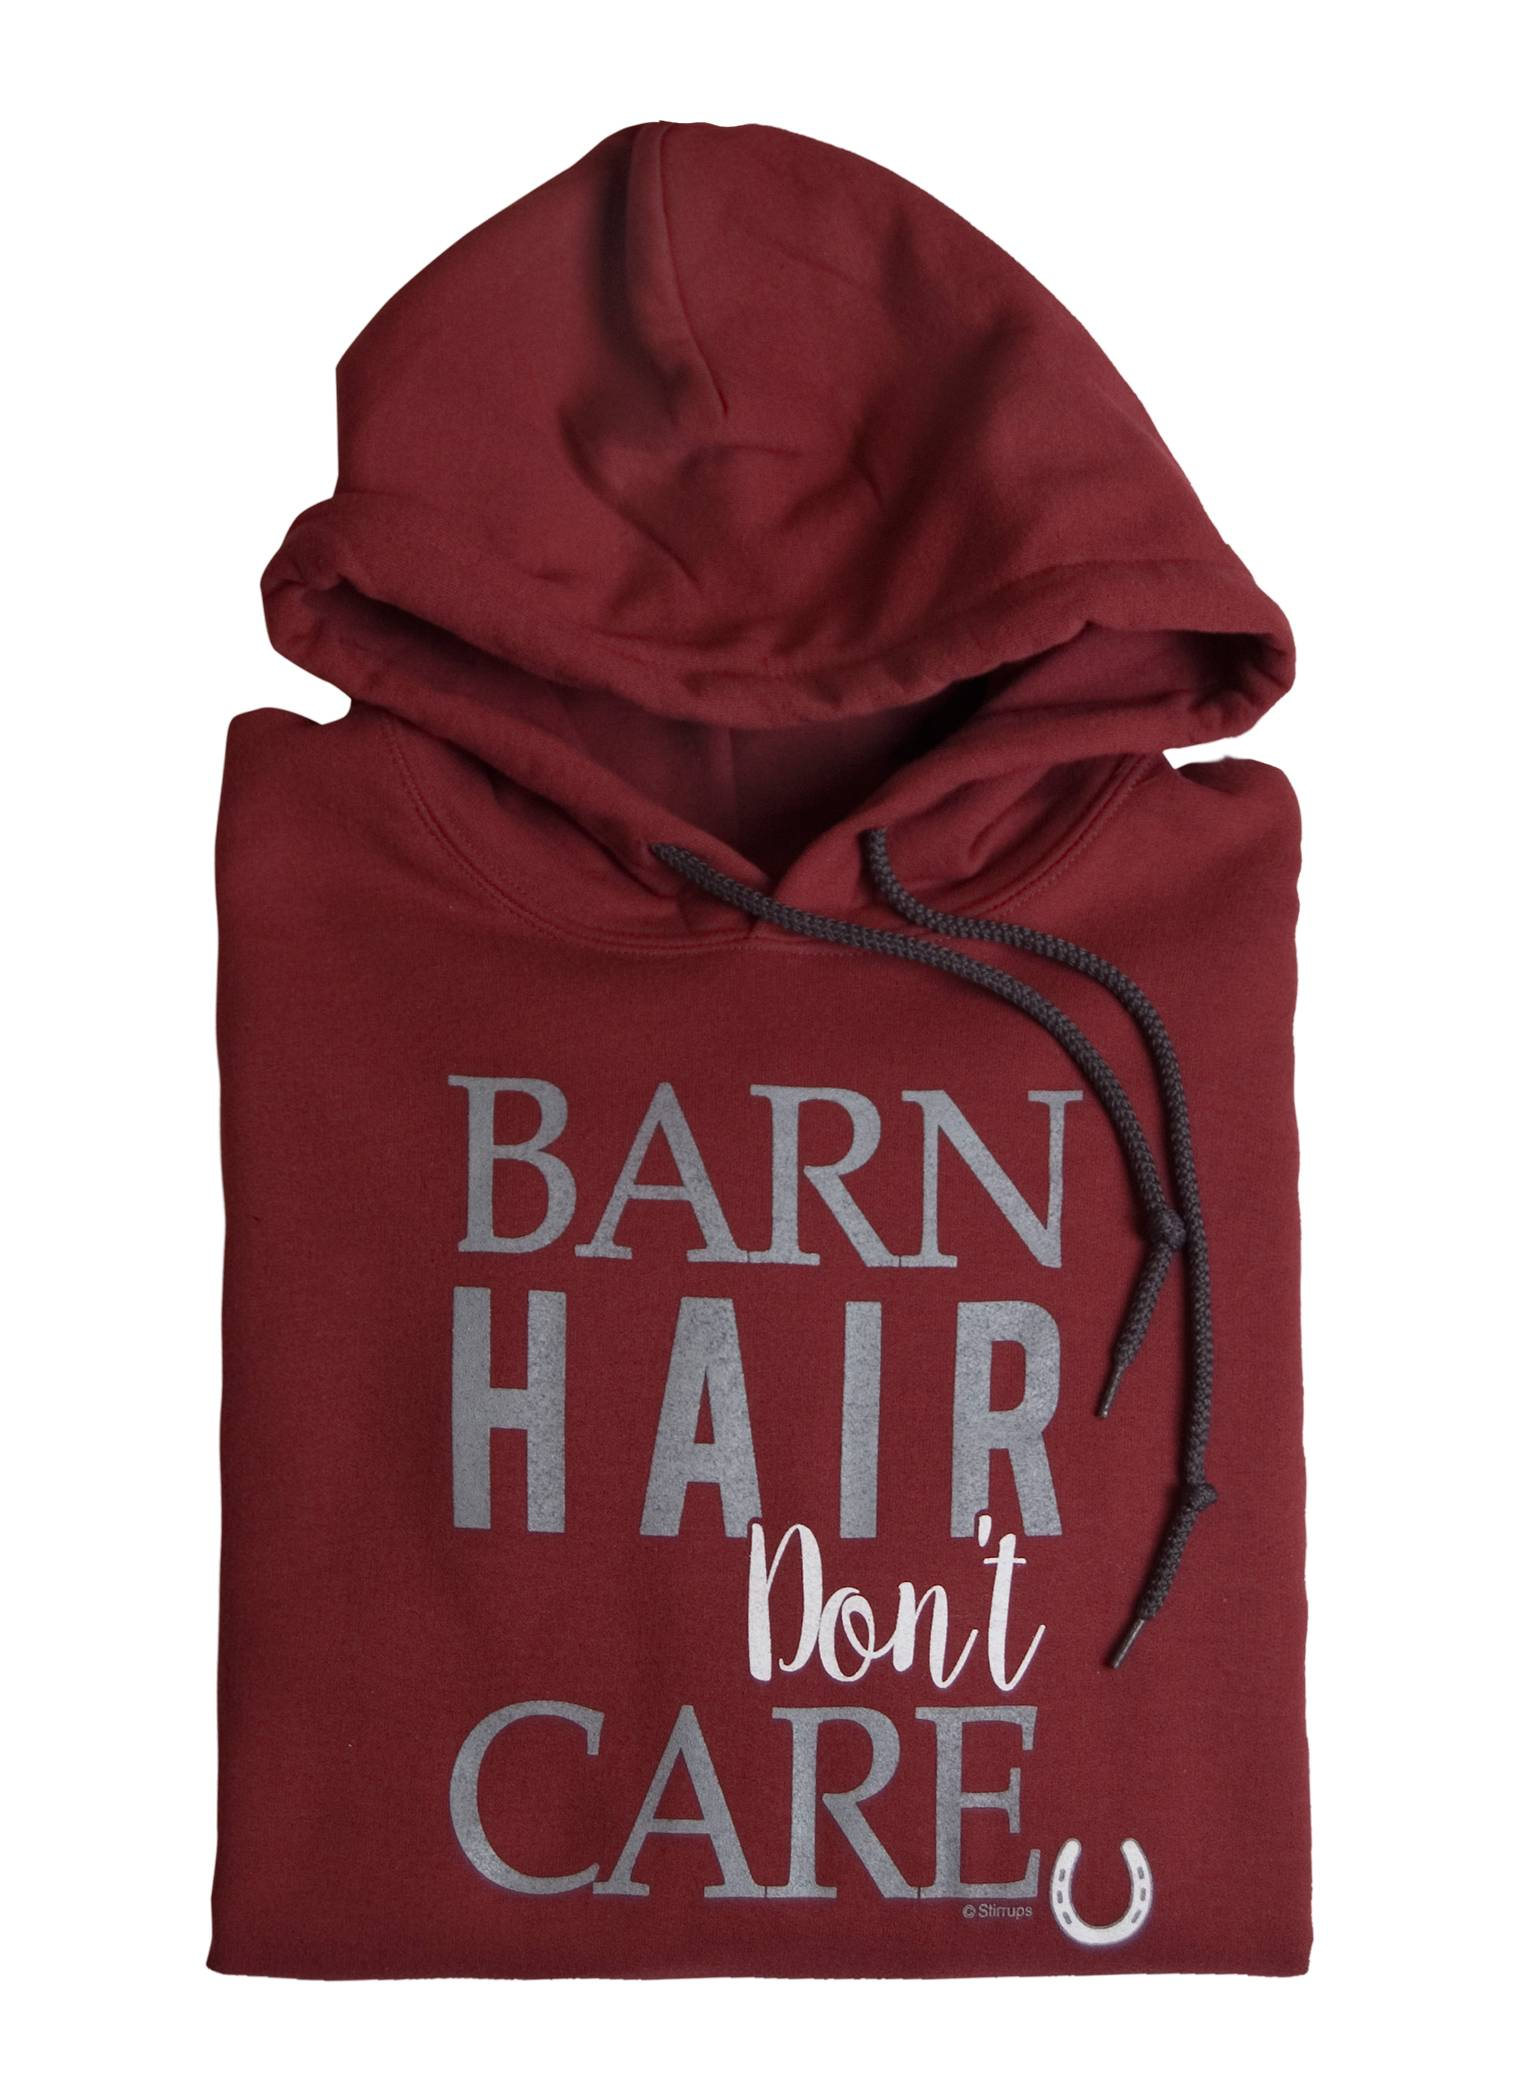 Stirrups Barn Hair Dont Care Hooded Sweatshirt - Ladies